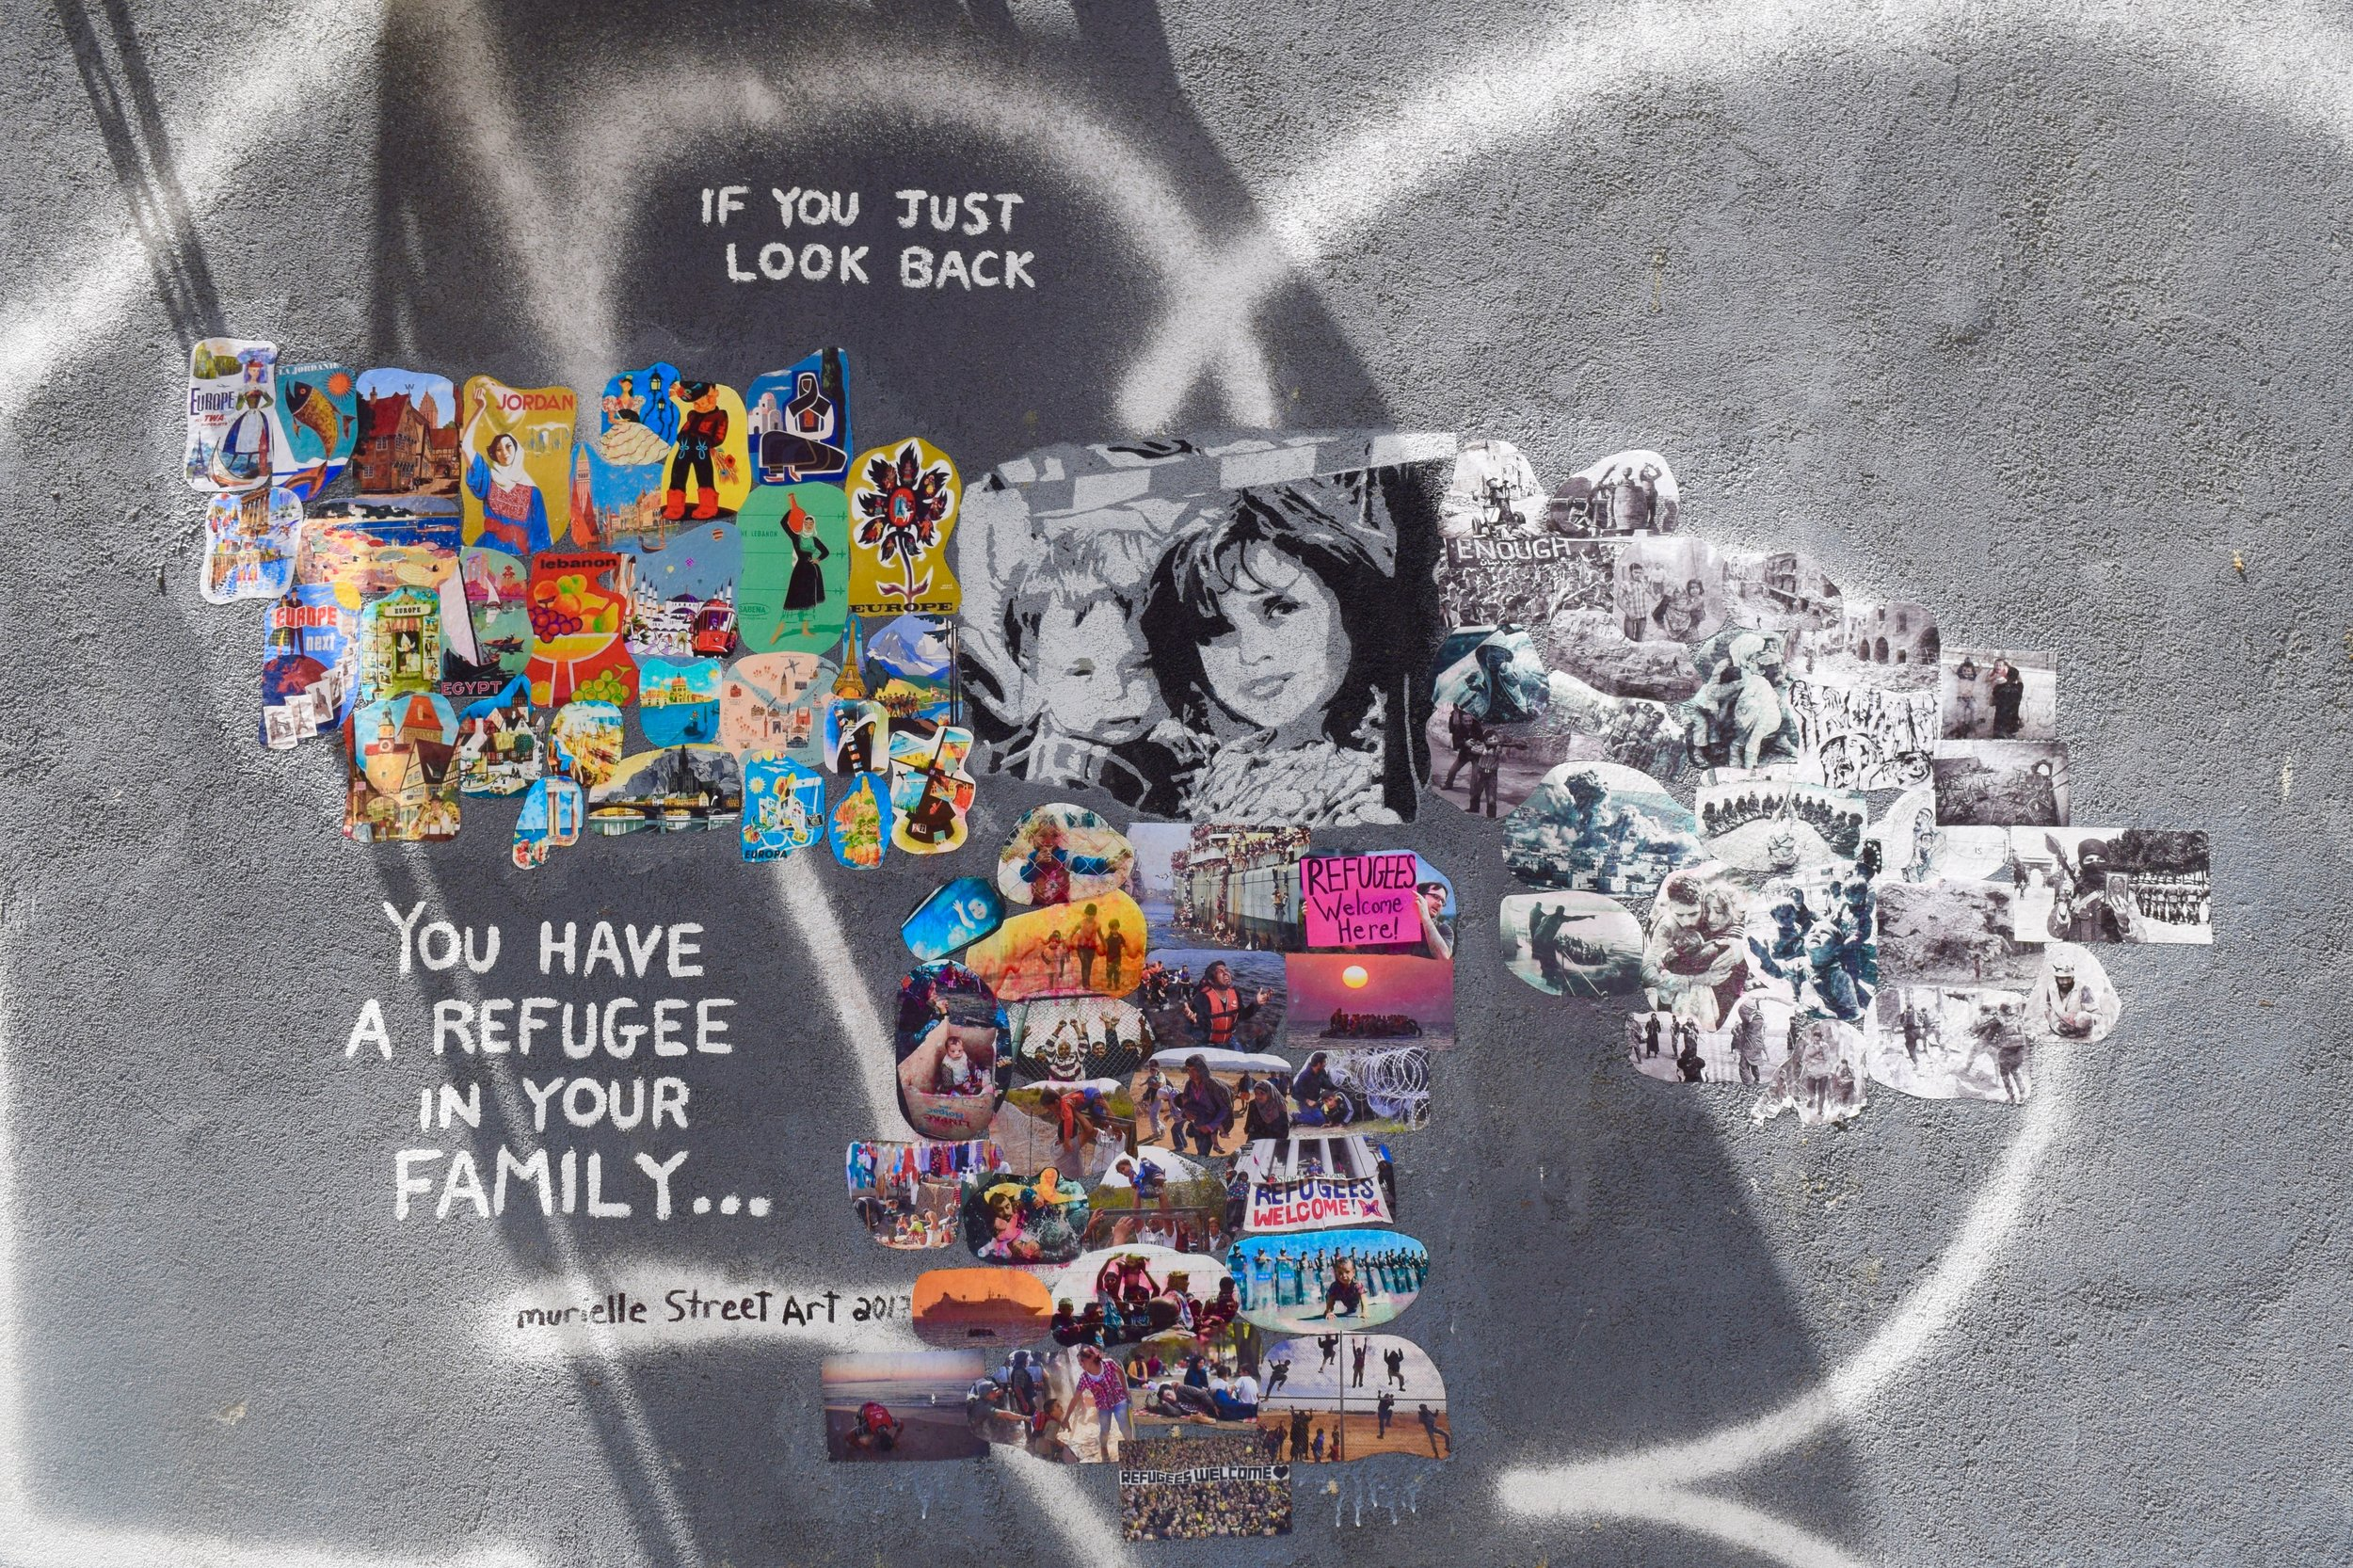 Street art in support of the refugees